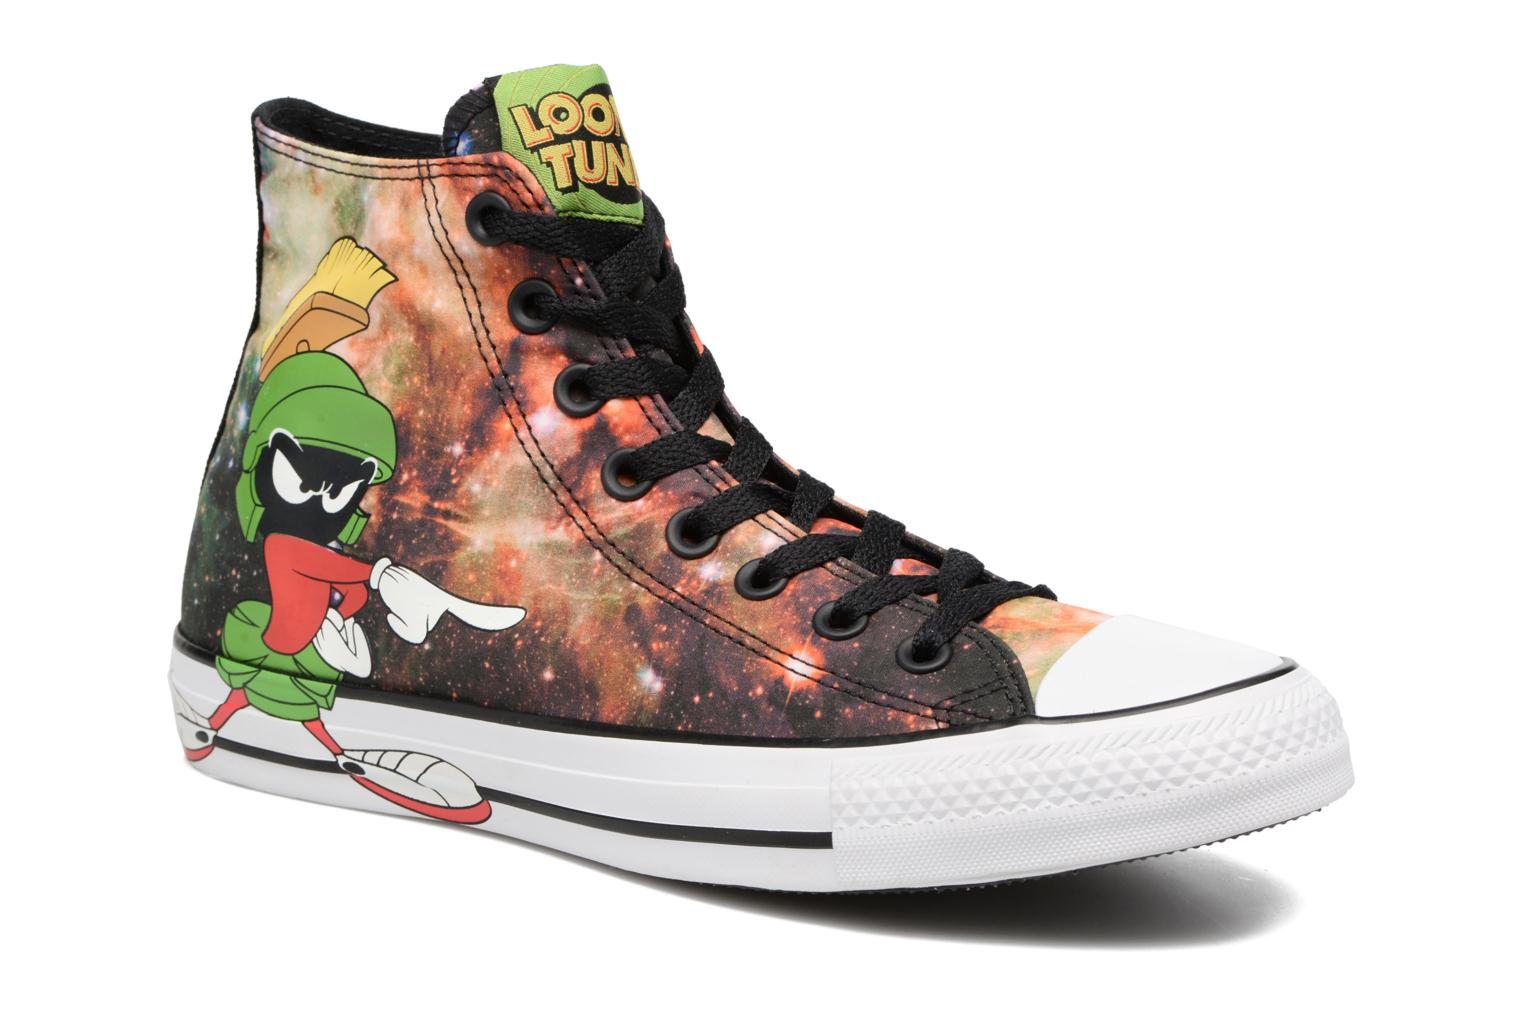 Marques Chaussure femme Converse femme Chuck Taylor All Star Looney Tunes Hi W Black/green/white